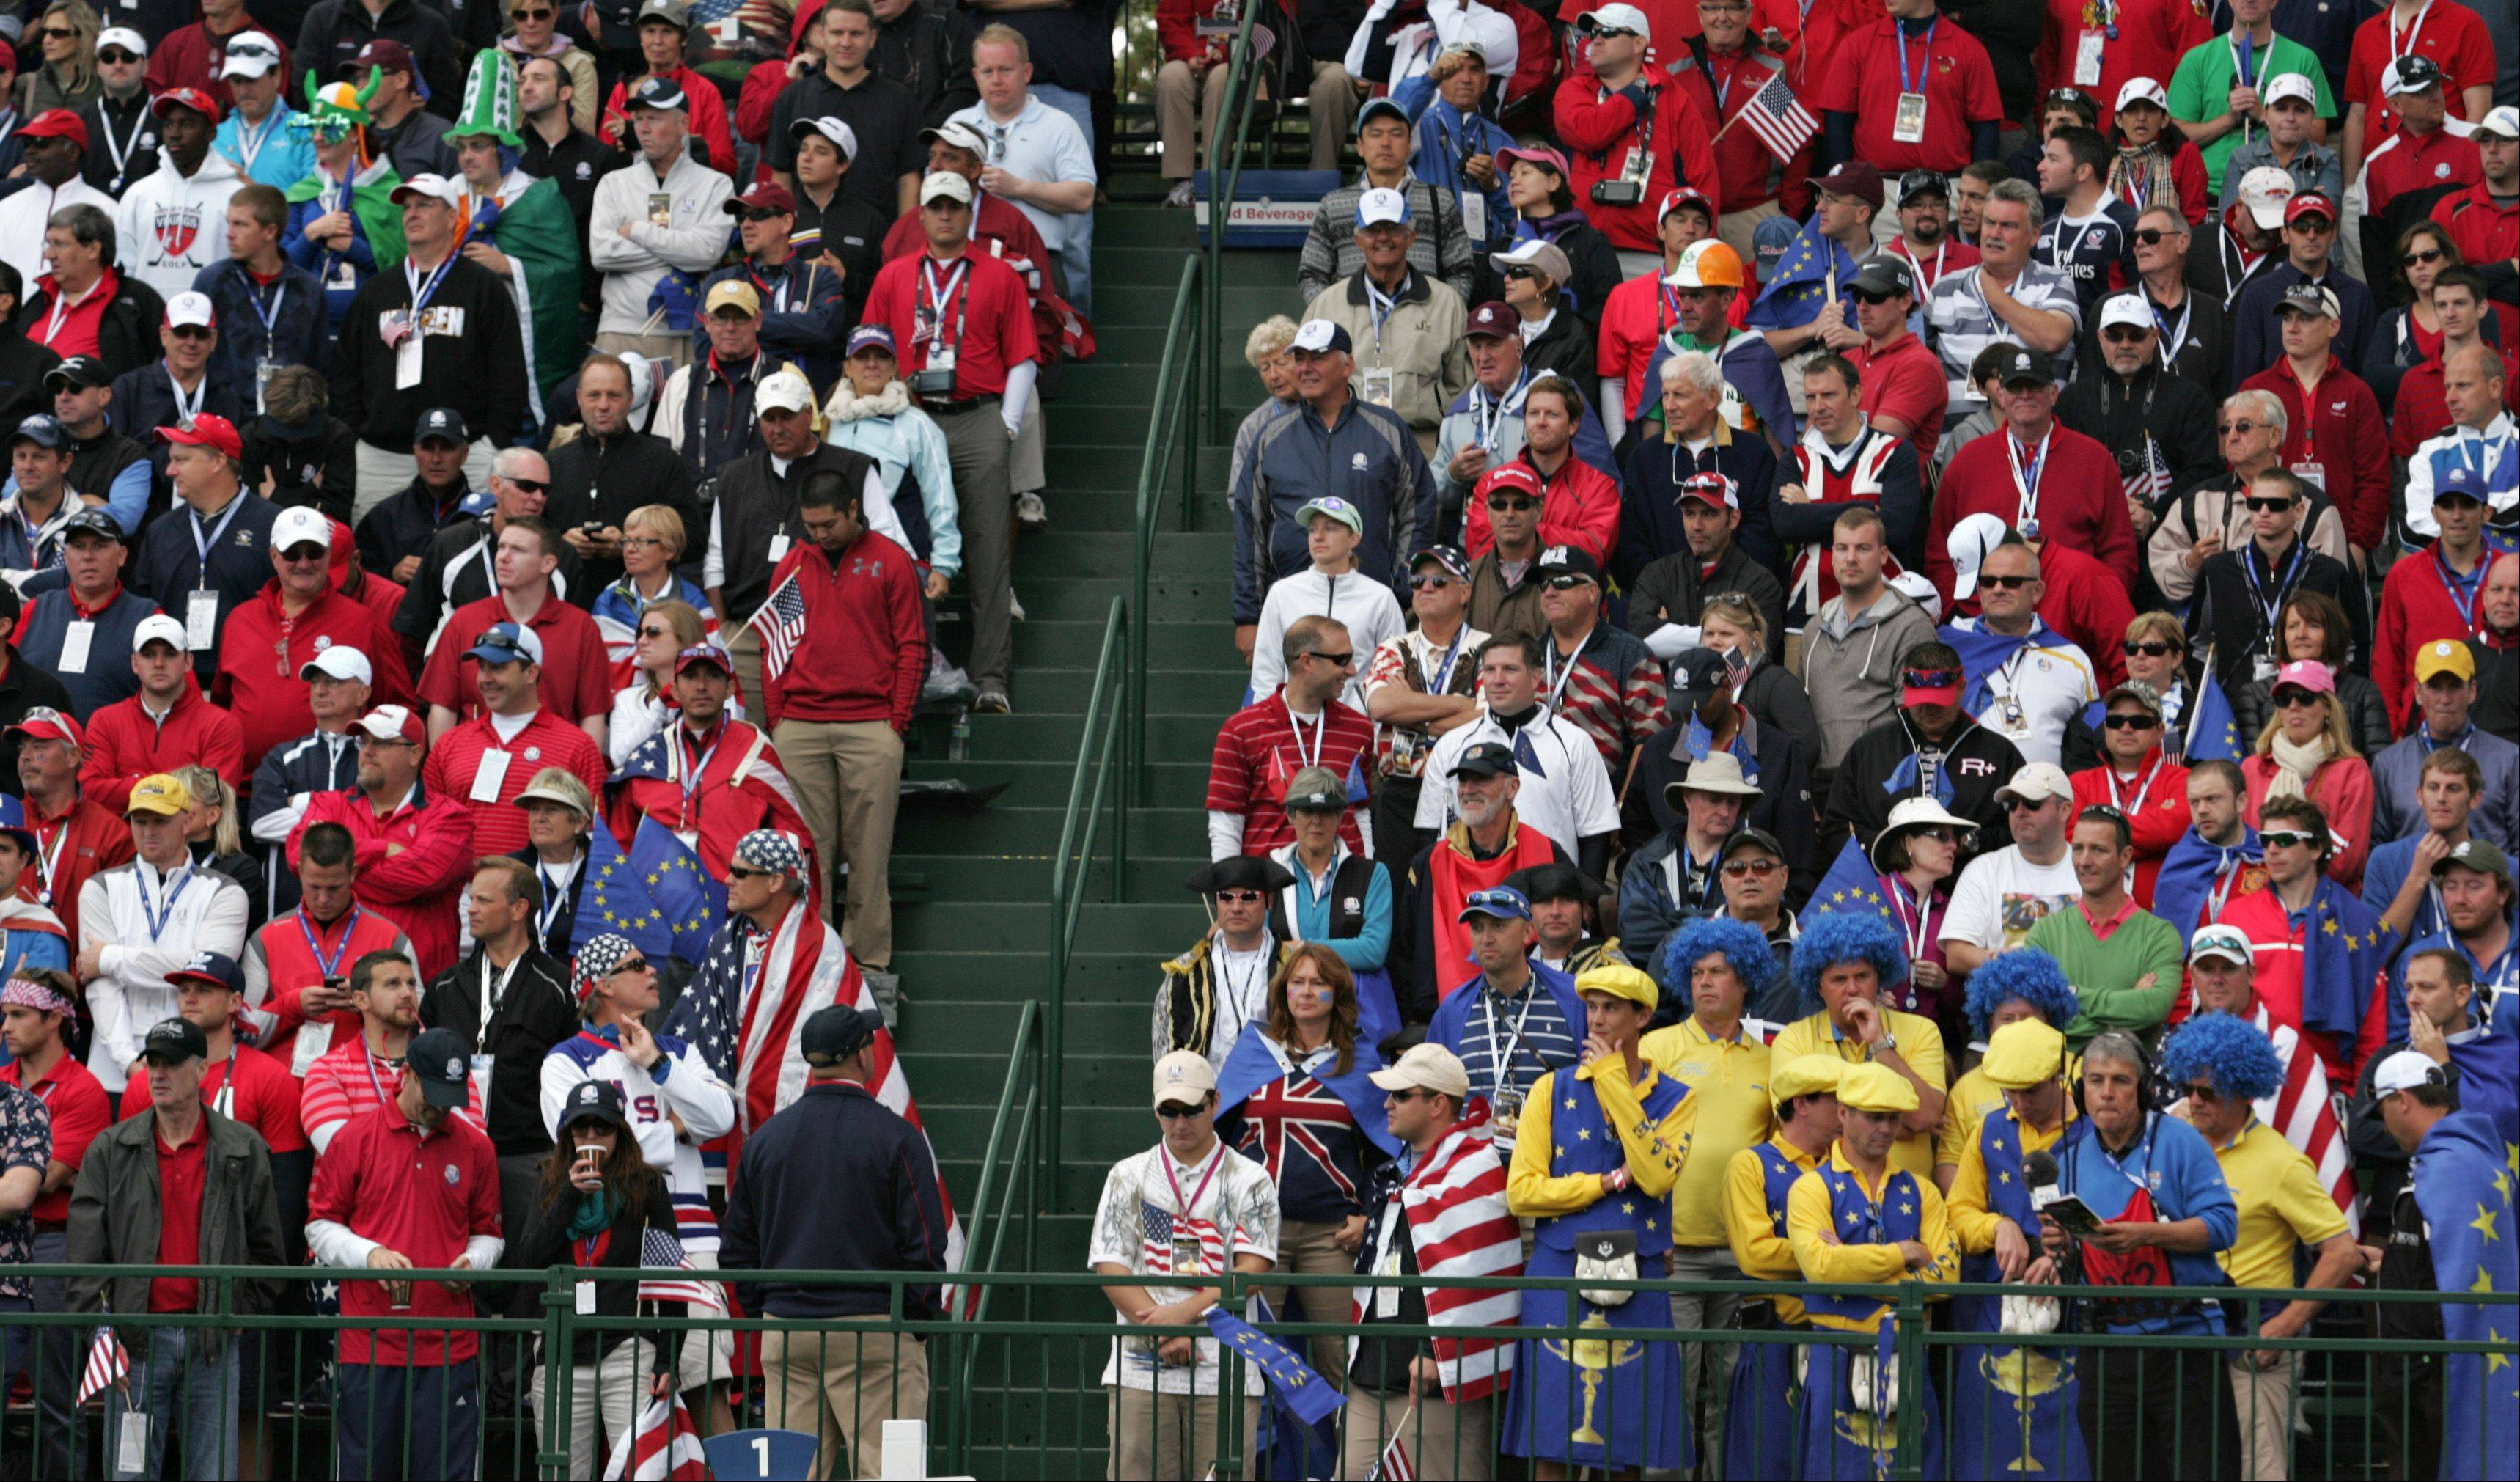 A small group of Team Europe fans are outnumbered by Team USA fans gathered in the grandstands at the first tee Sunday morning.